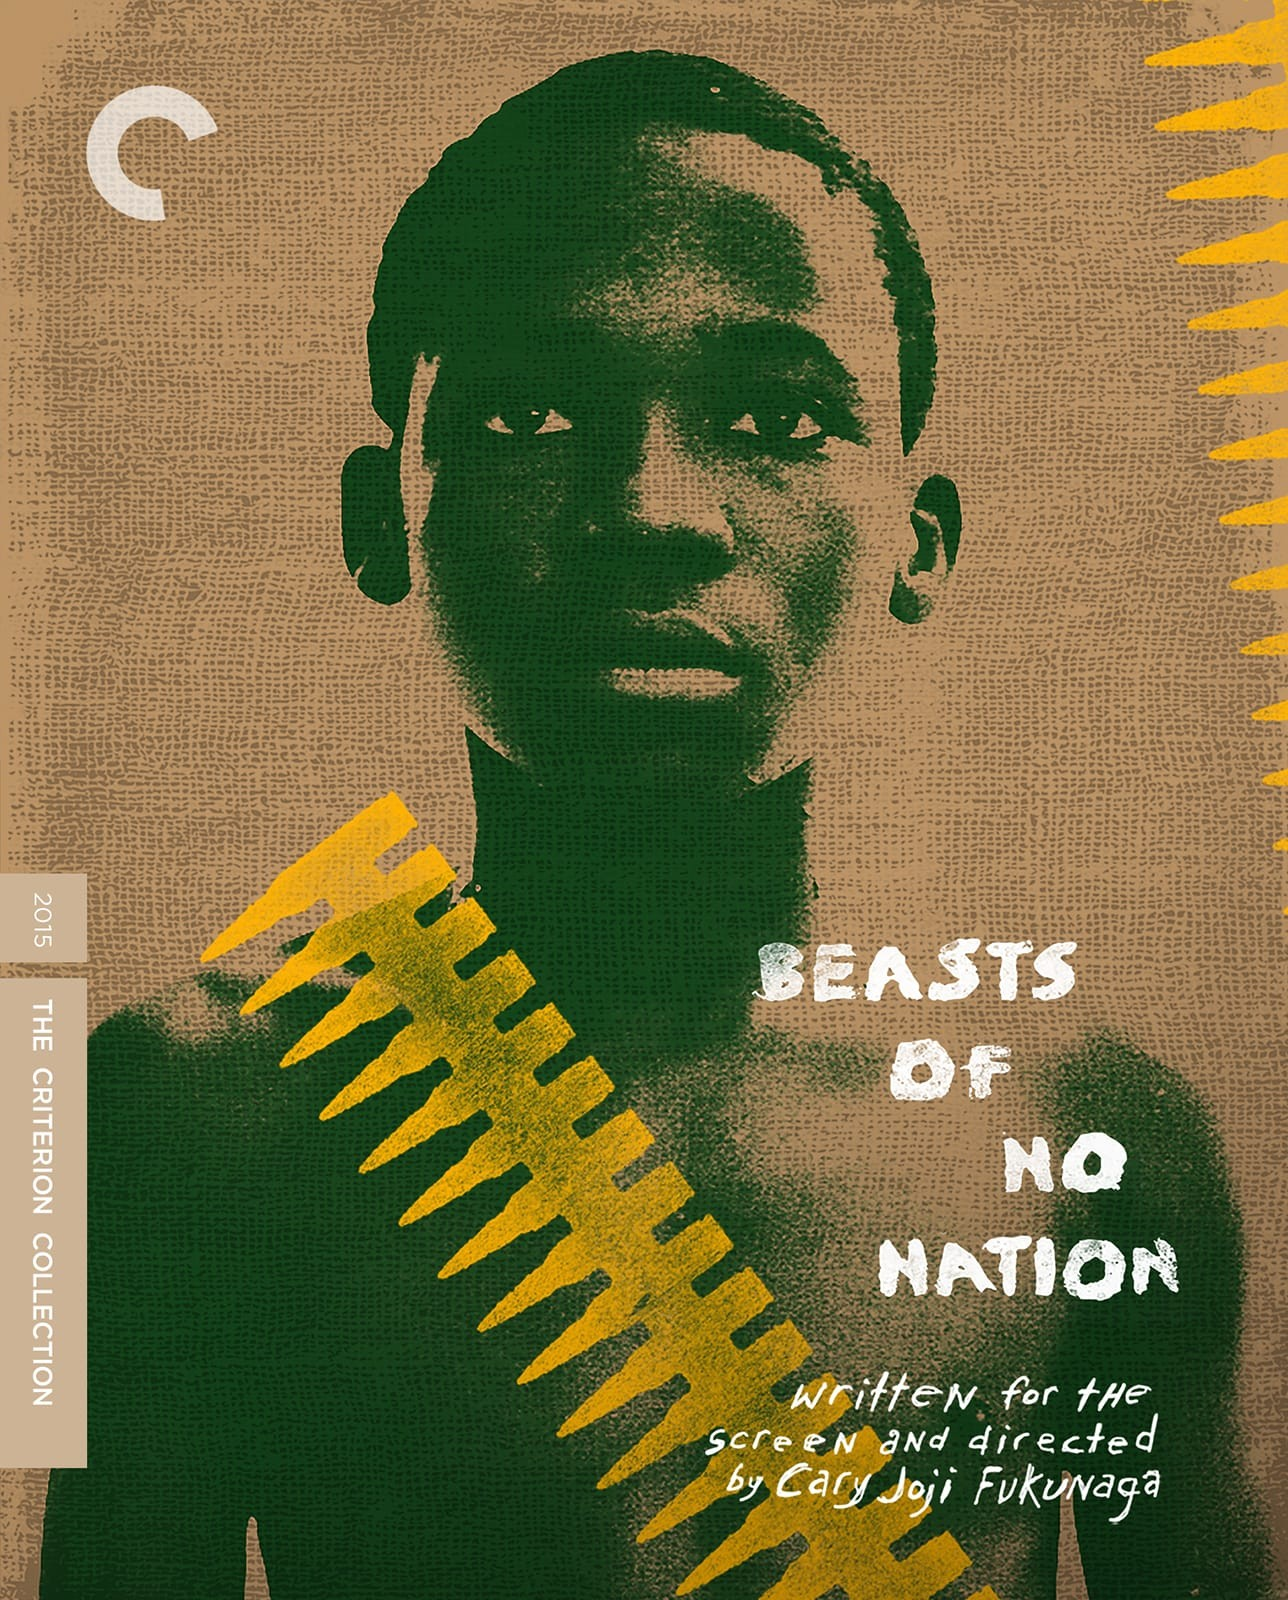 Beasts of No Nation (2015) | The Criterion Collection